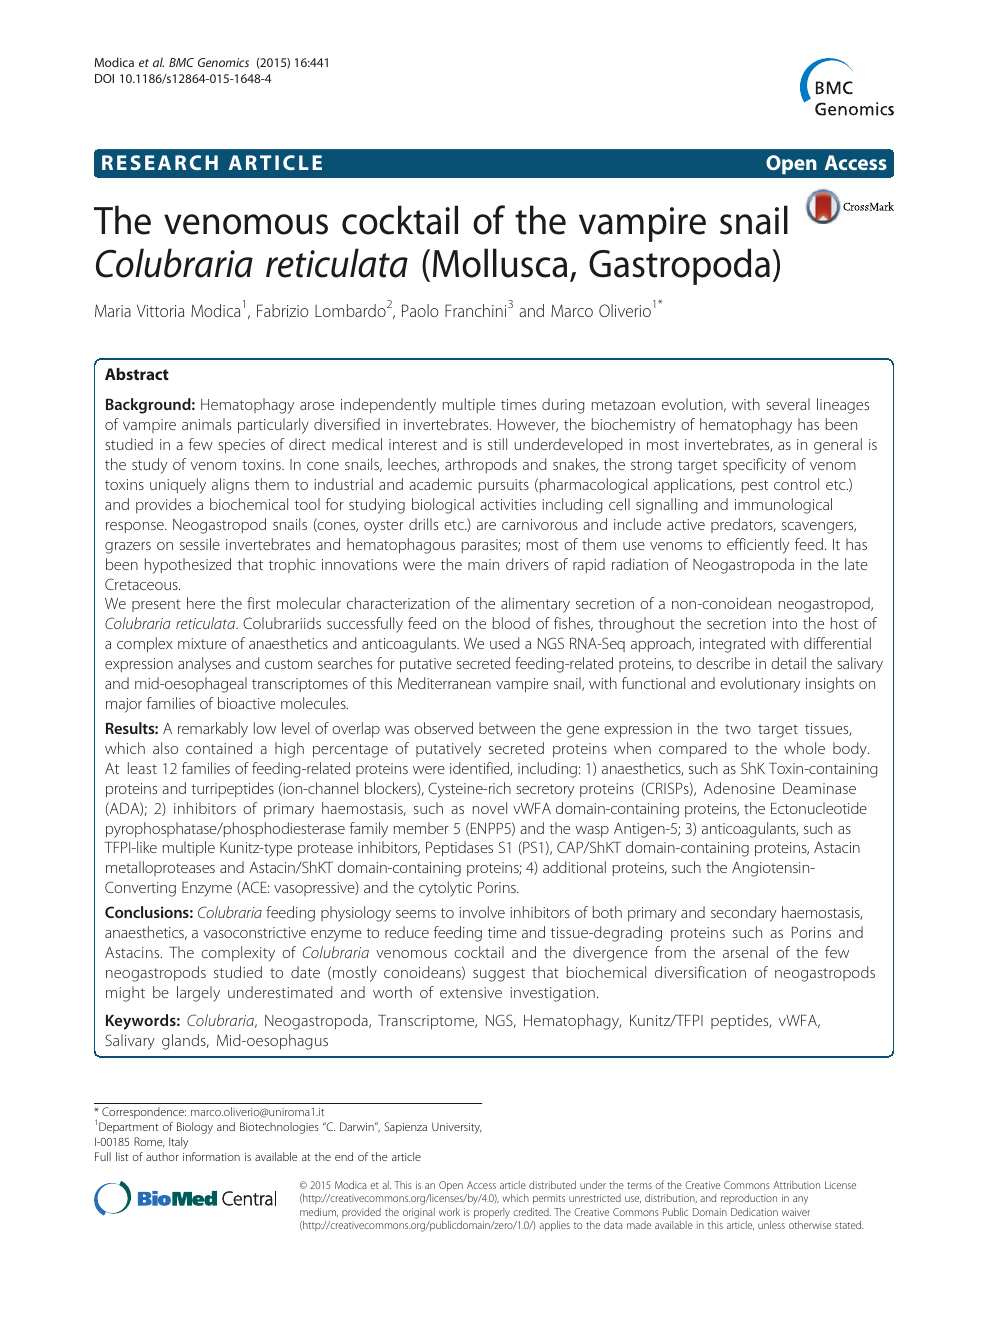 The venomous cocktail of the vampire snail Colubraria